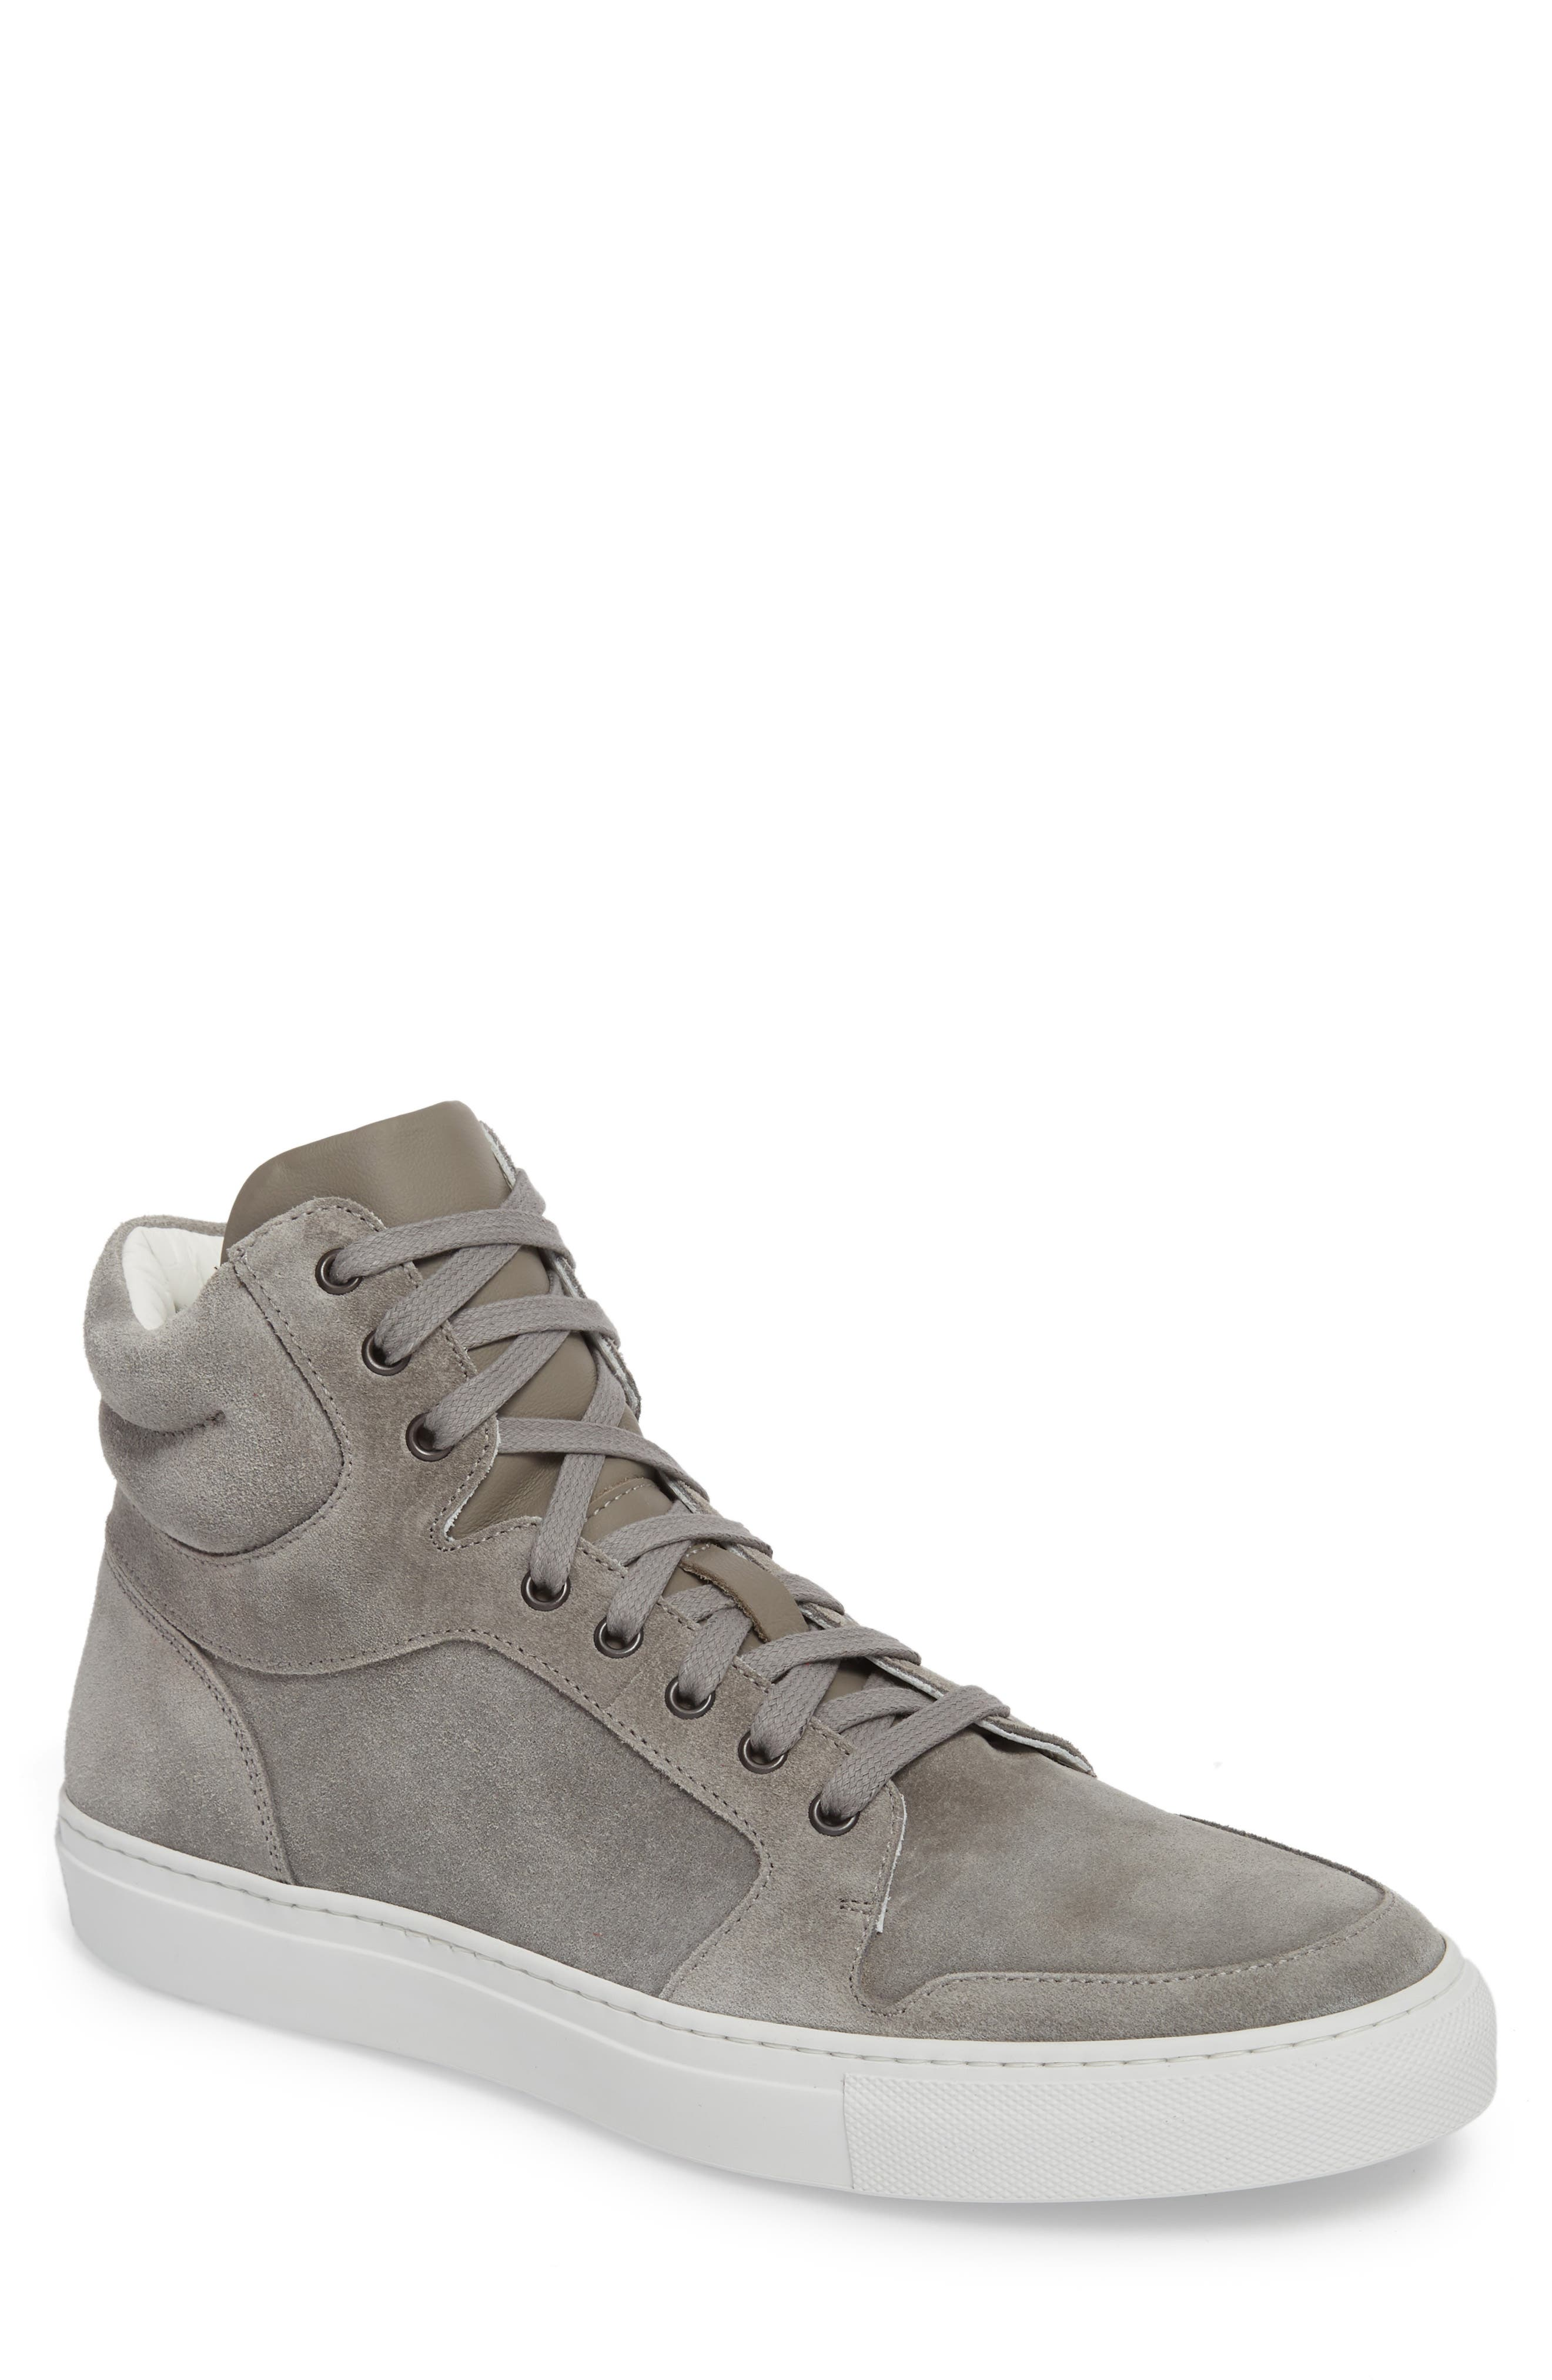 Belmont High Top Sneaker,                             Main thumbnail 1, color,                             Grey Suede